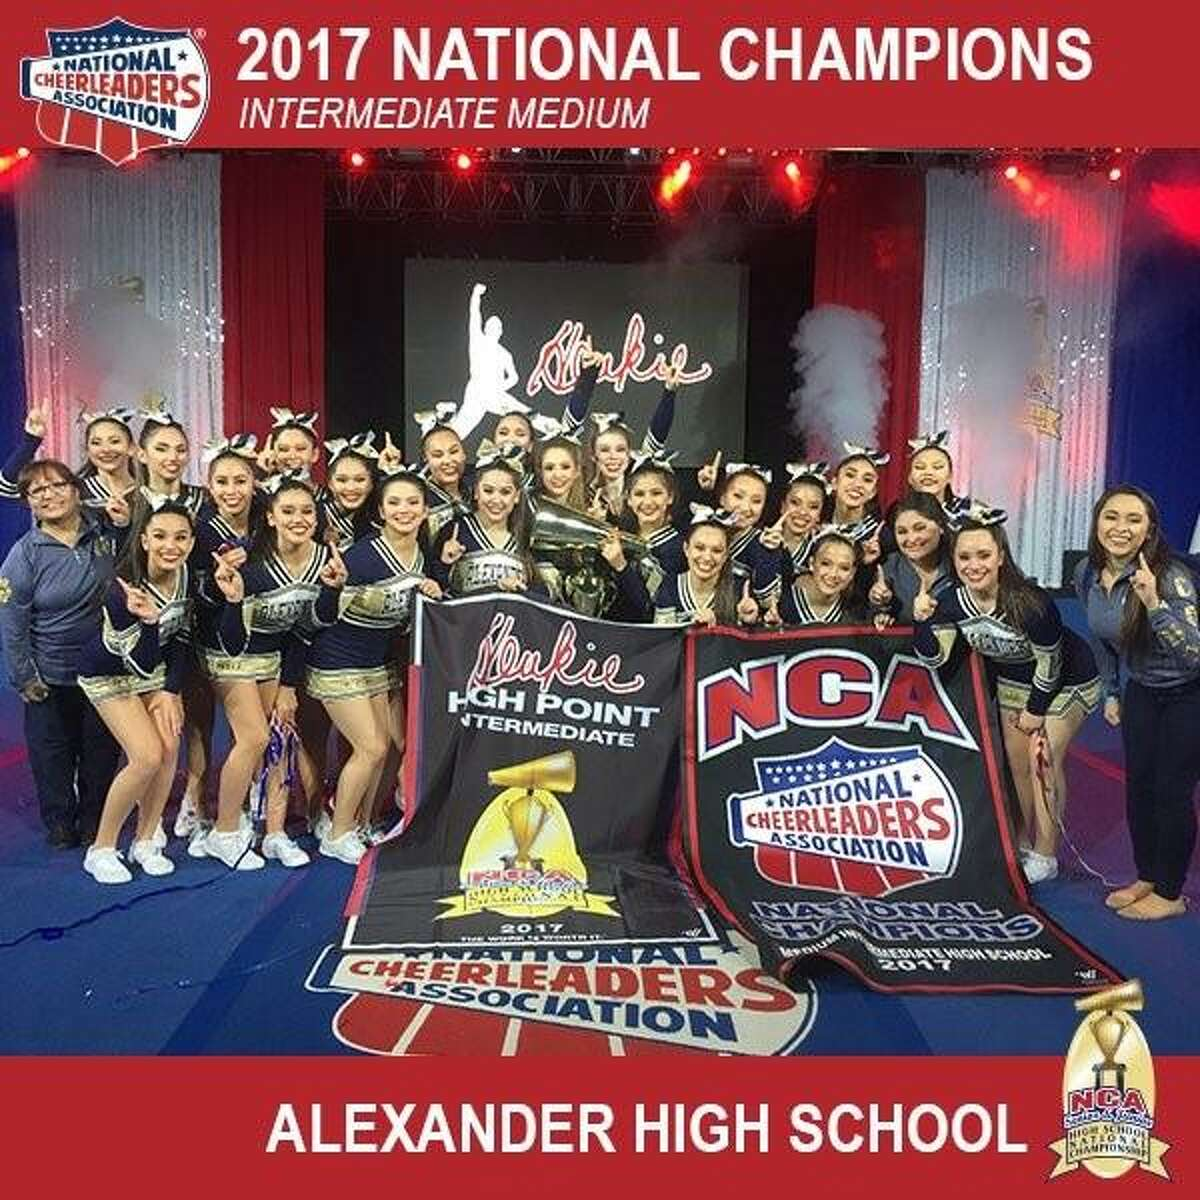 Pictured are the J.B. Alexander High School cheerleaders. The team made the City of Laredo and State of Texas proud Sunday evening by outscoring 17 of the best squads from across the country.